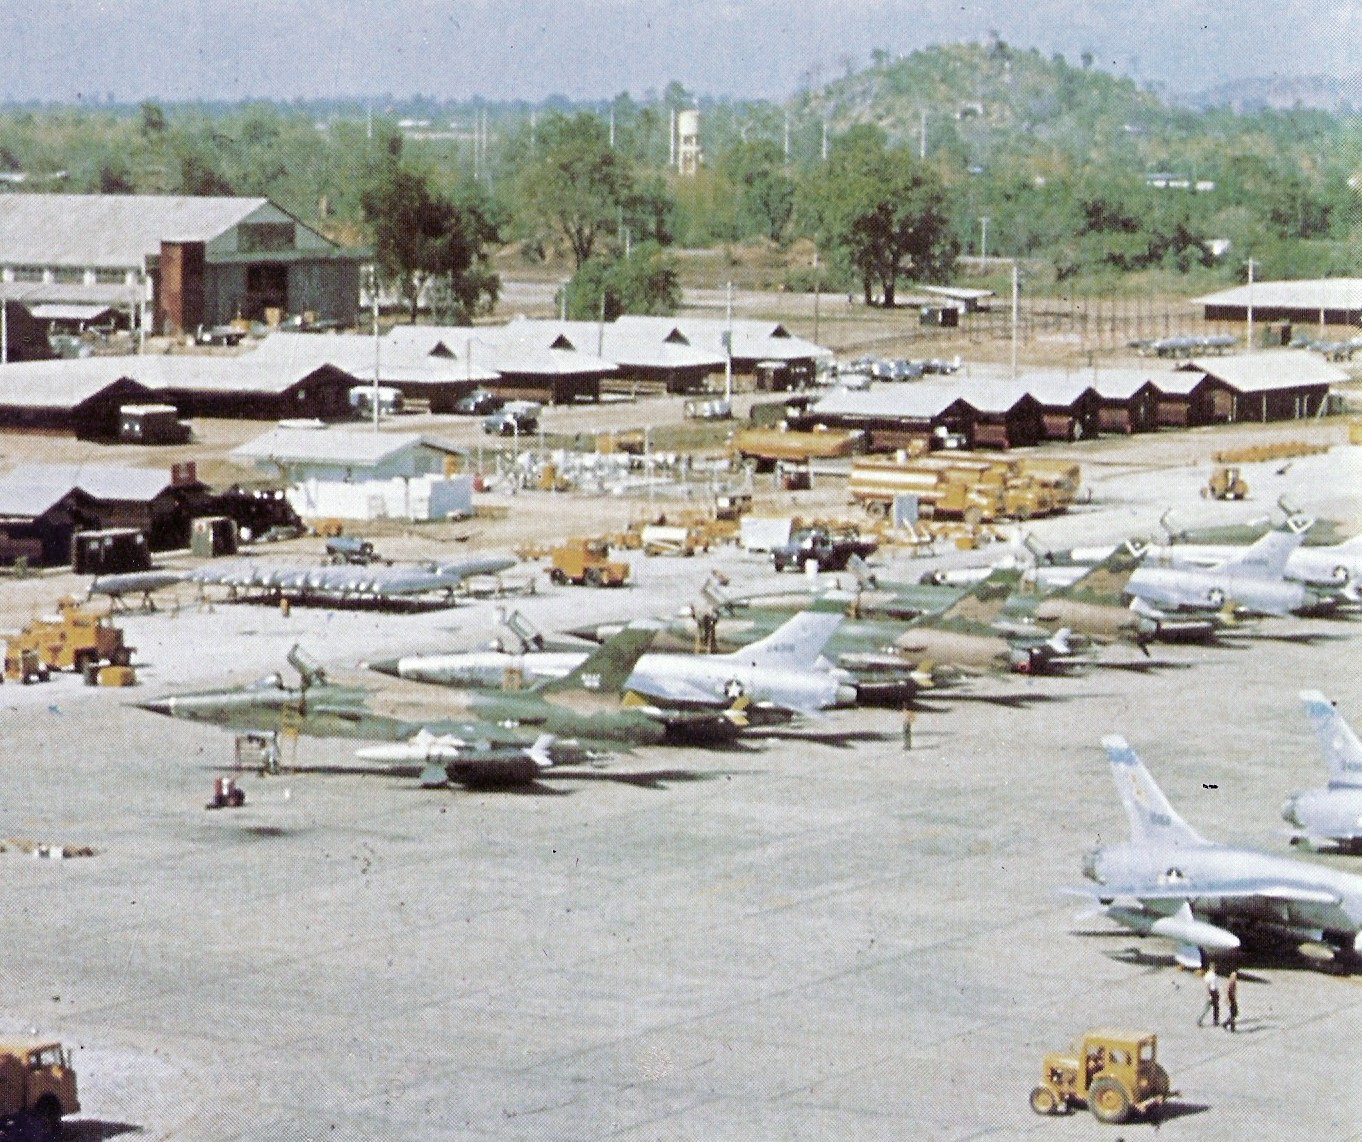 Us Air Force Base Thailand http://commons.wikimedia.org/wiki/File:F-105Ds_4TFW_Takhli_Dec1965.jpg